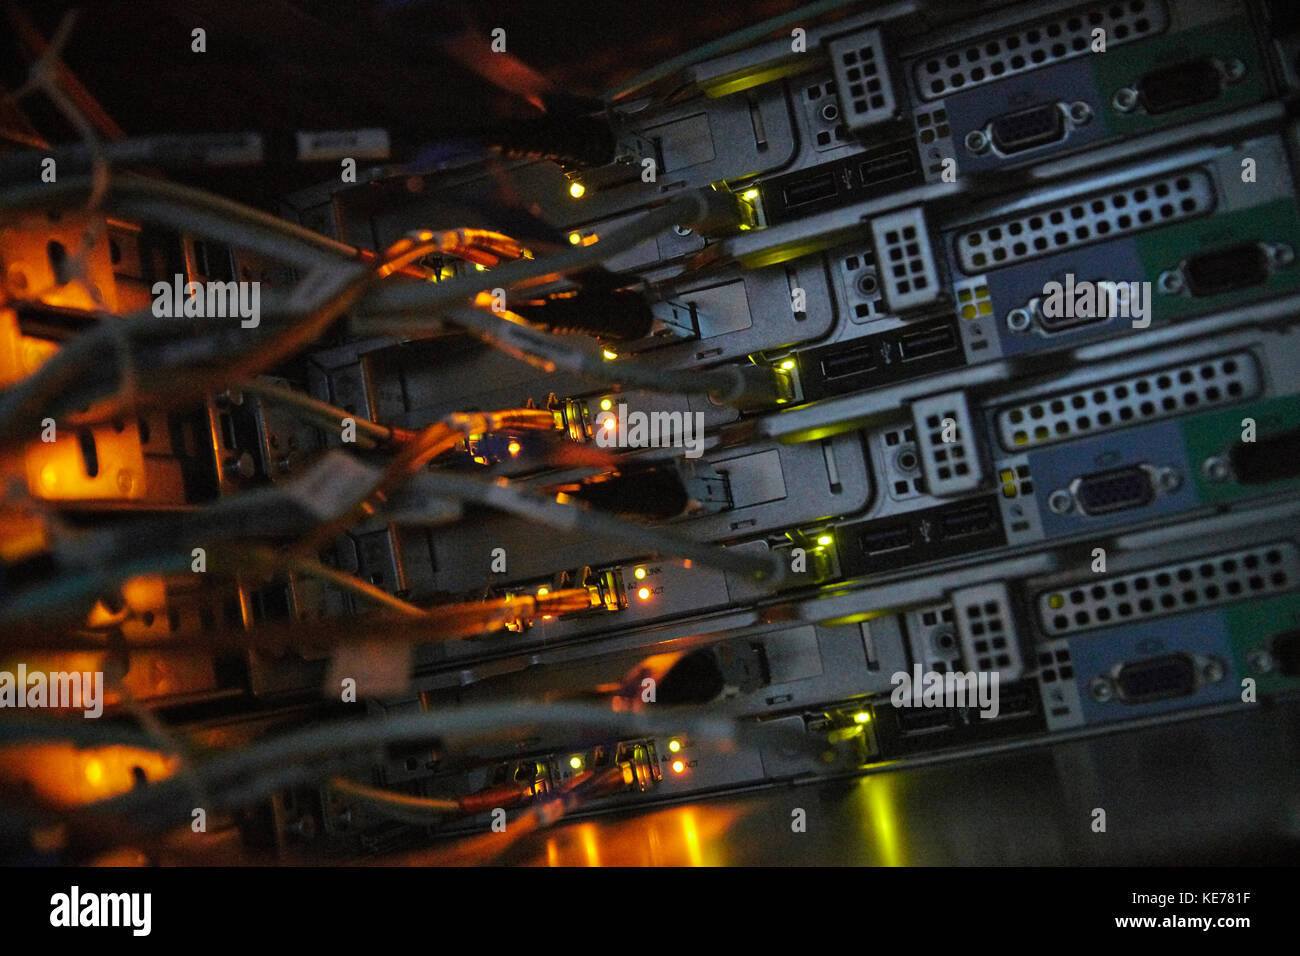 Server panels and cables - Stock Image